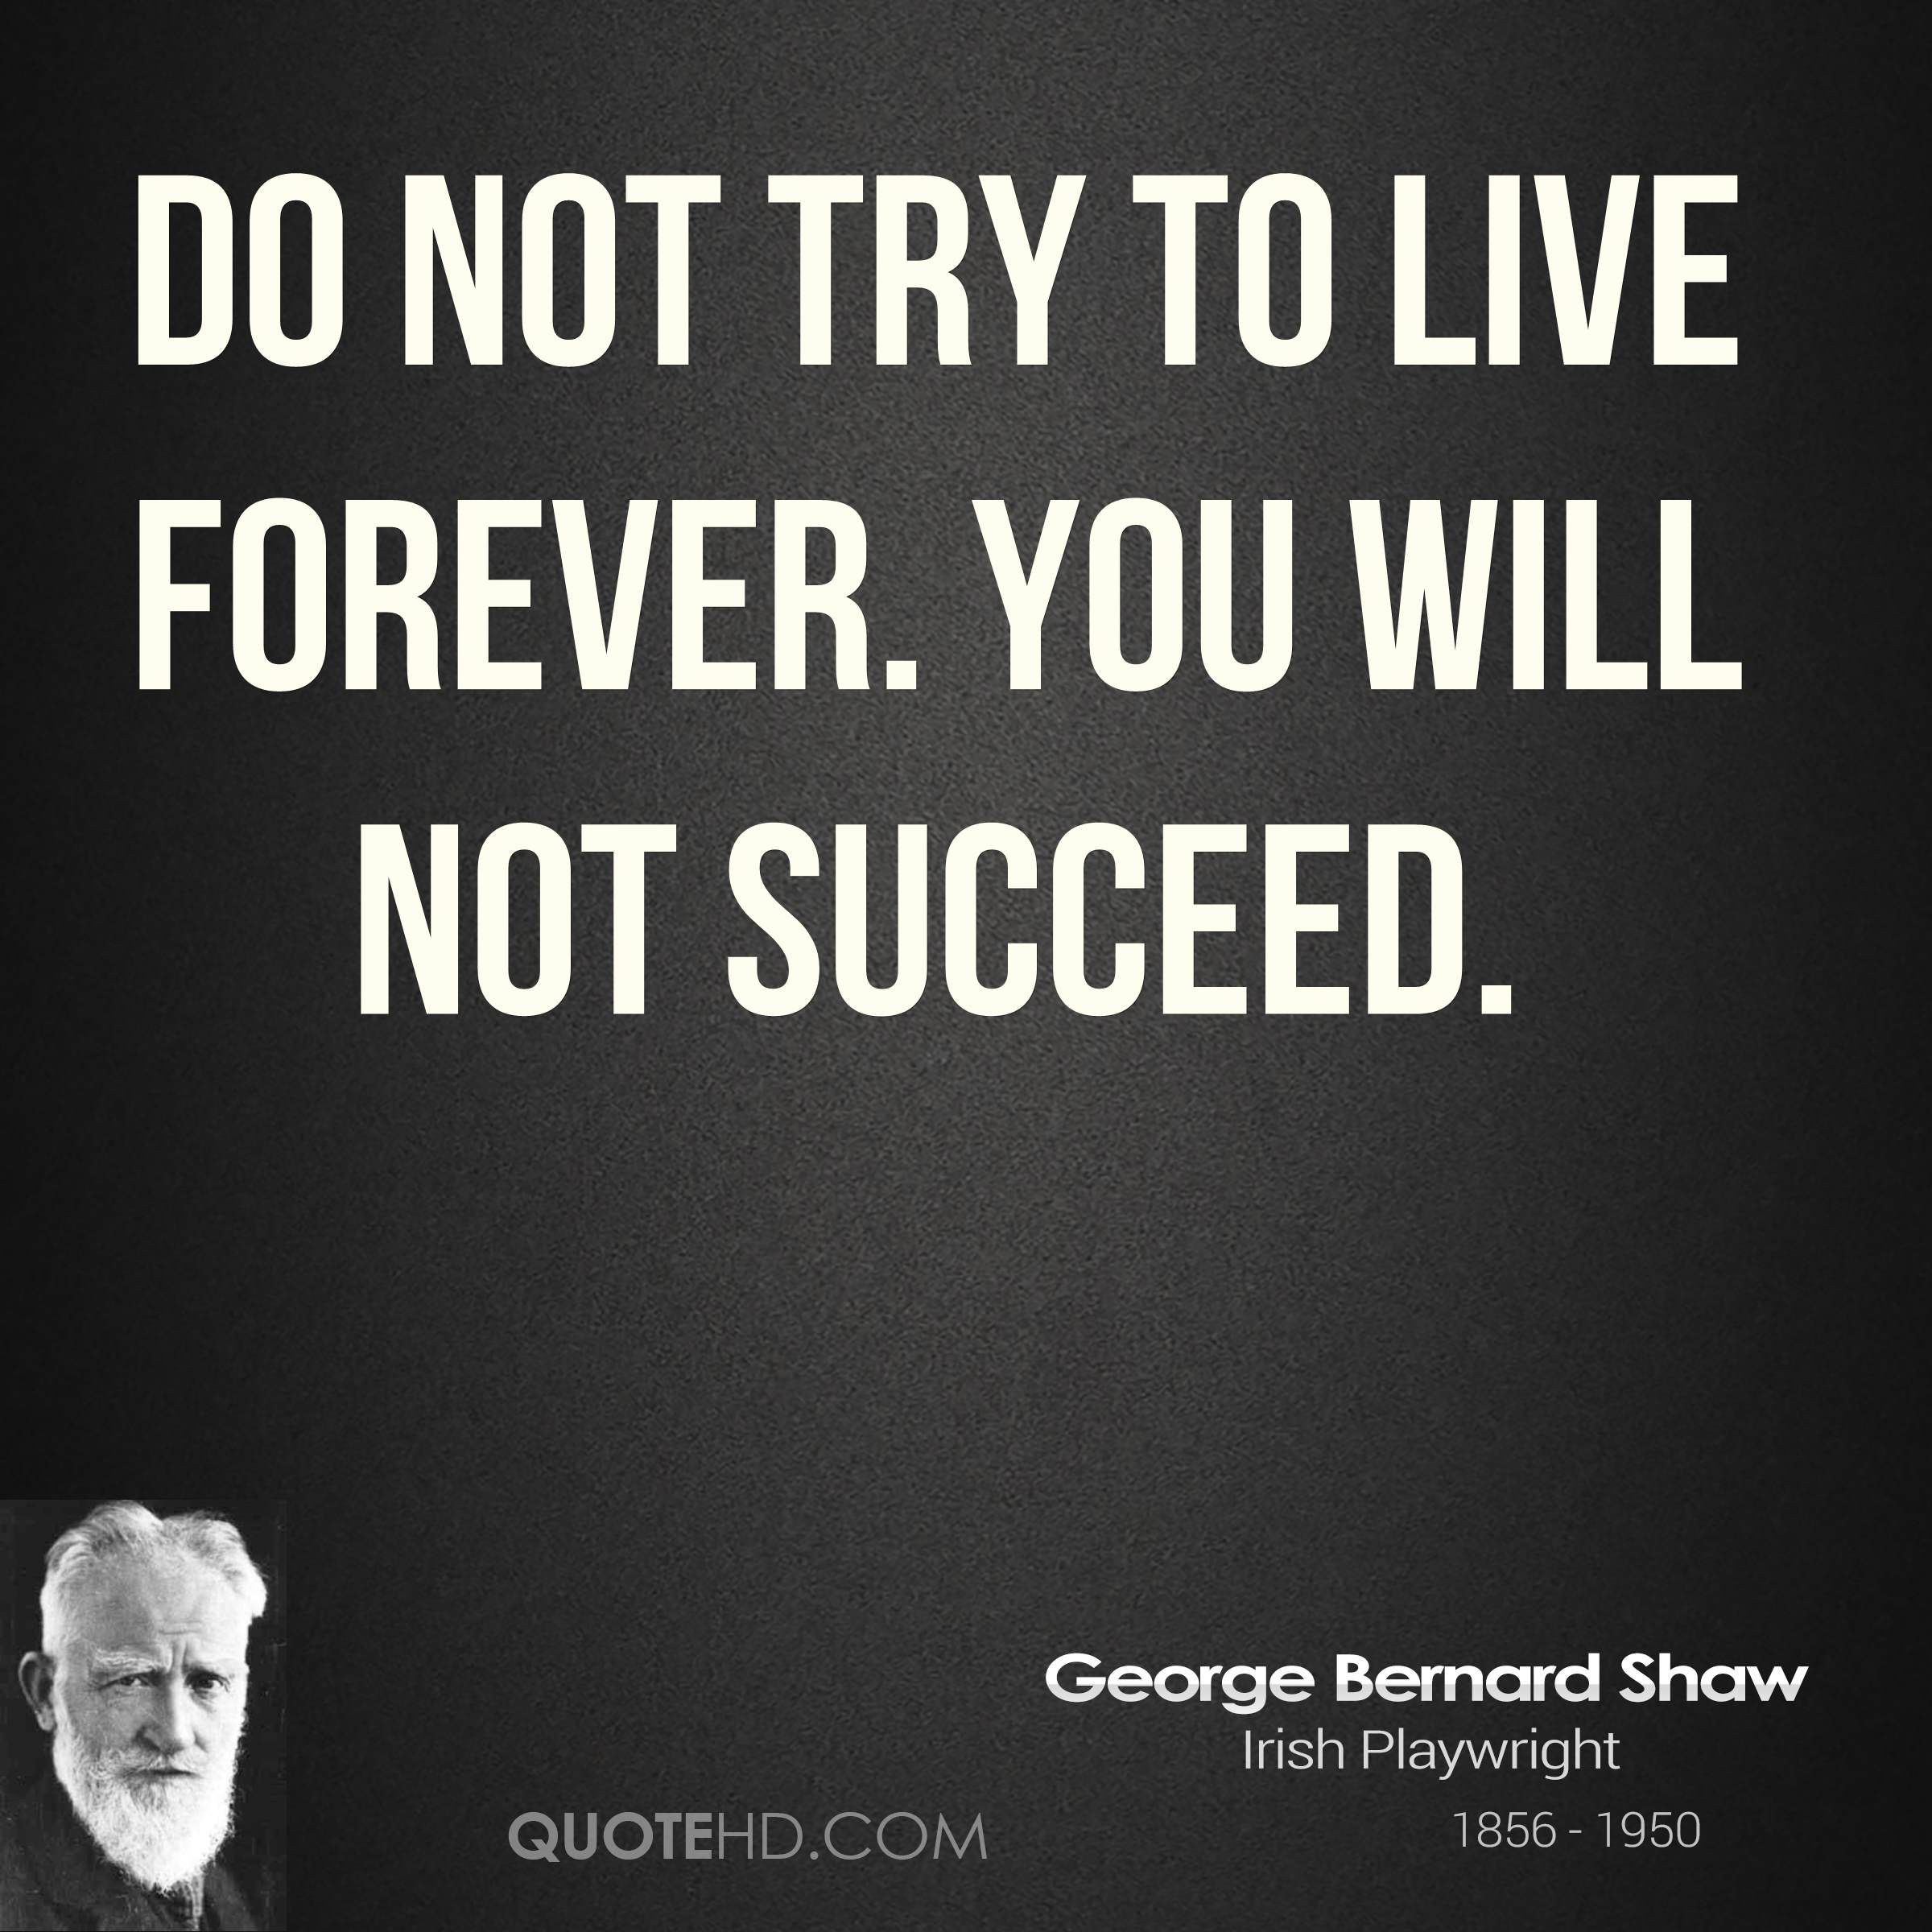 Do not try to live forever. You will not succeed.